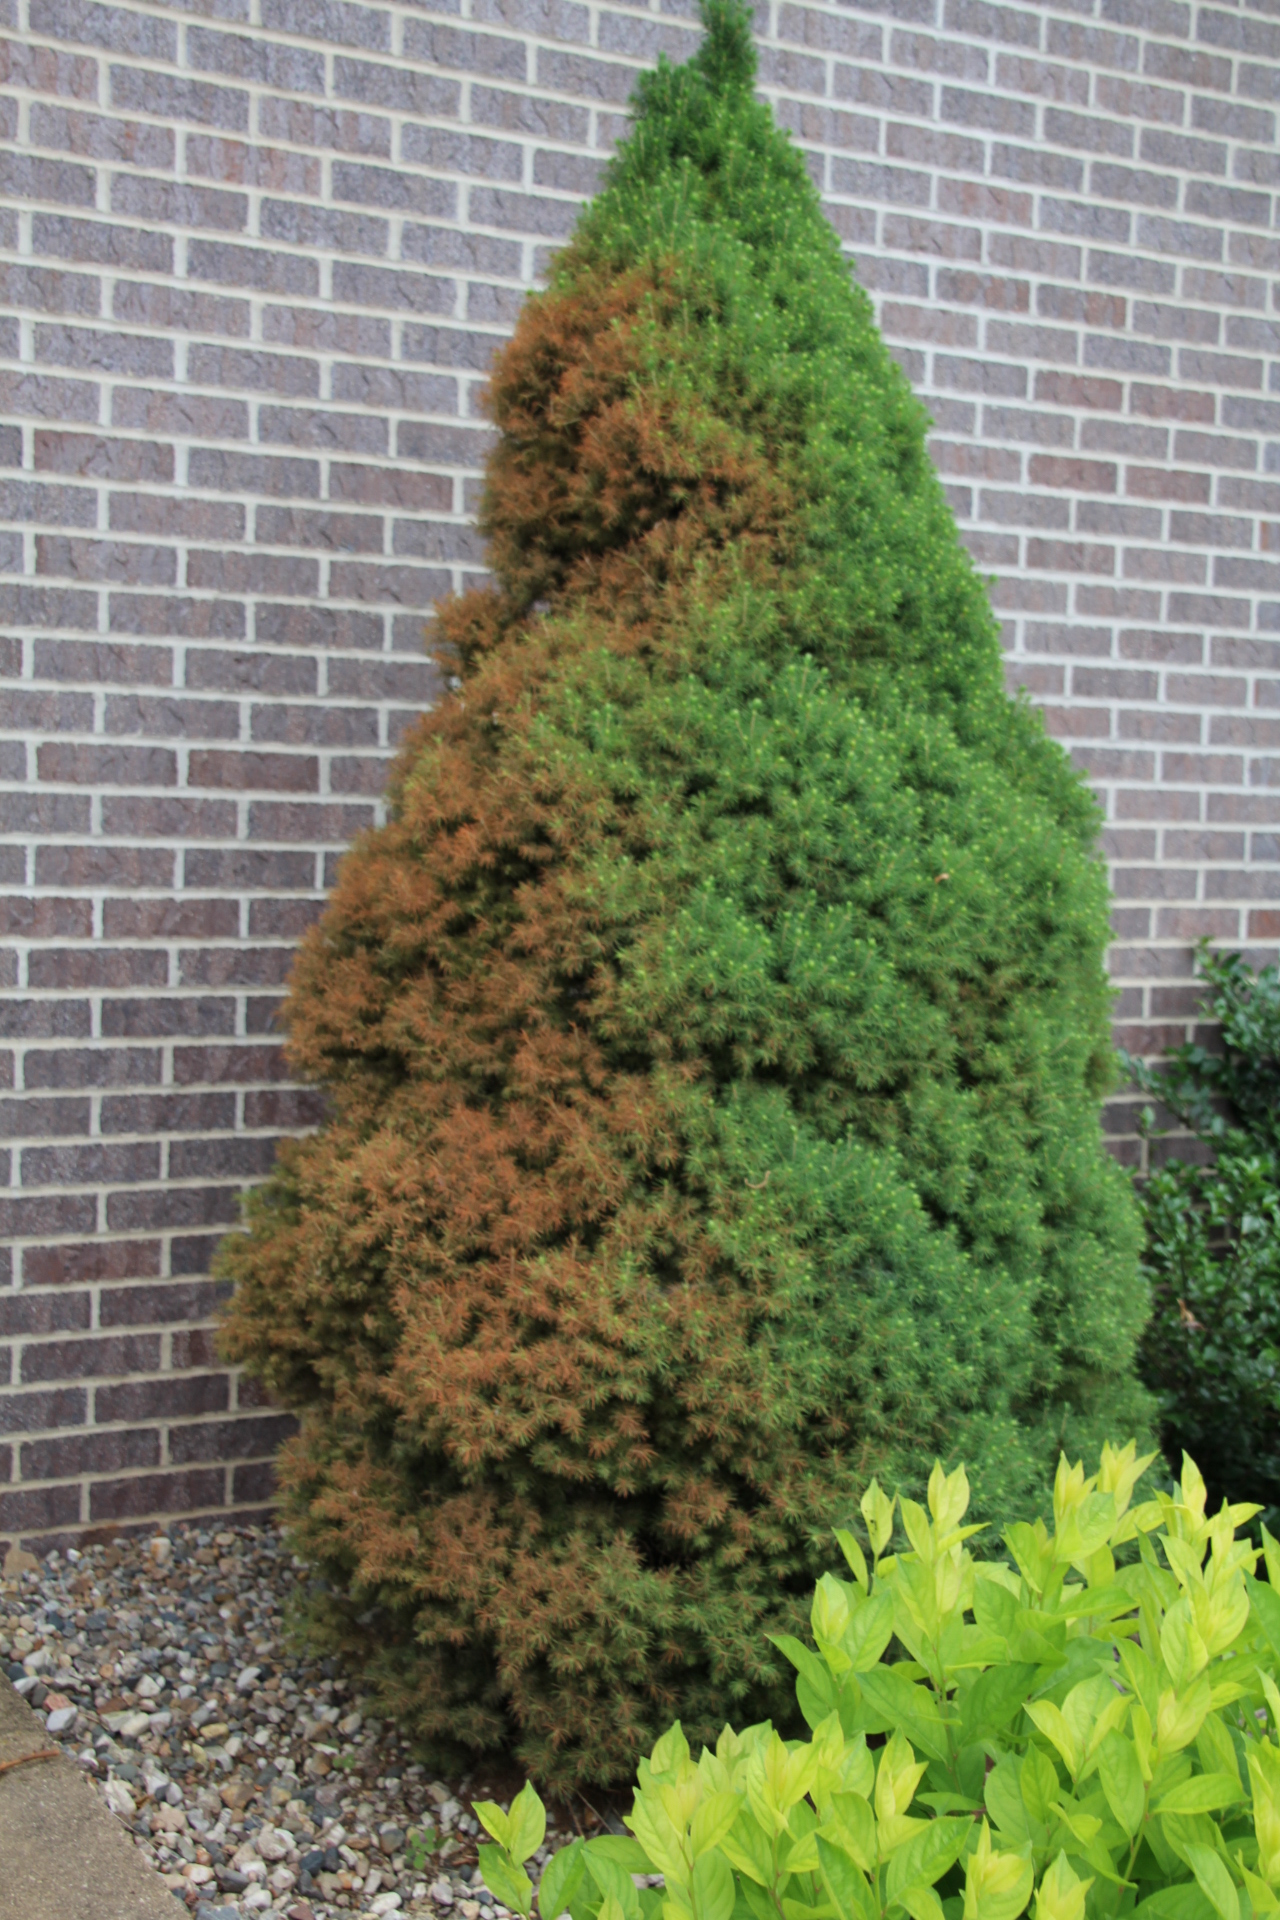 browning due to winter burn on dwarf alberta spruce - How To Keep Christmas Tree From Drying Out